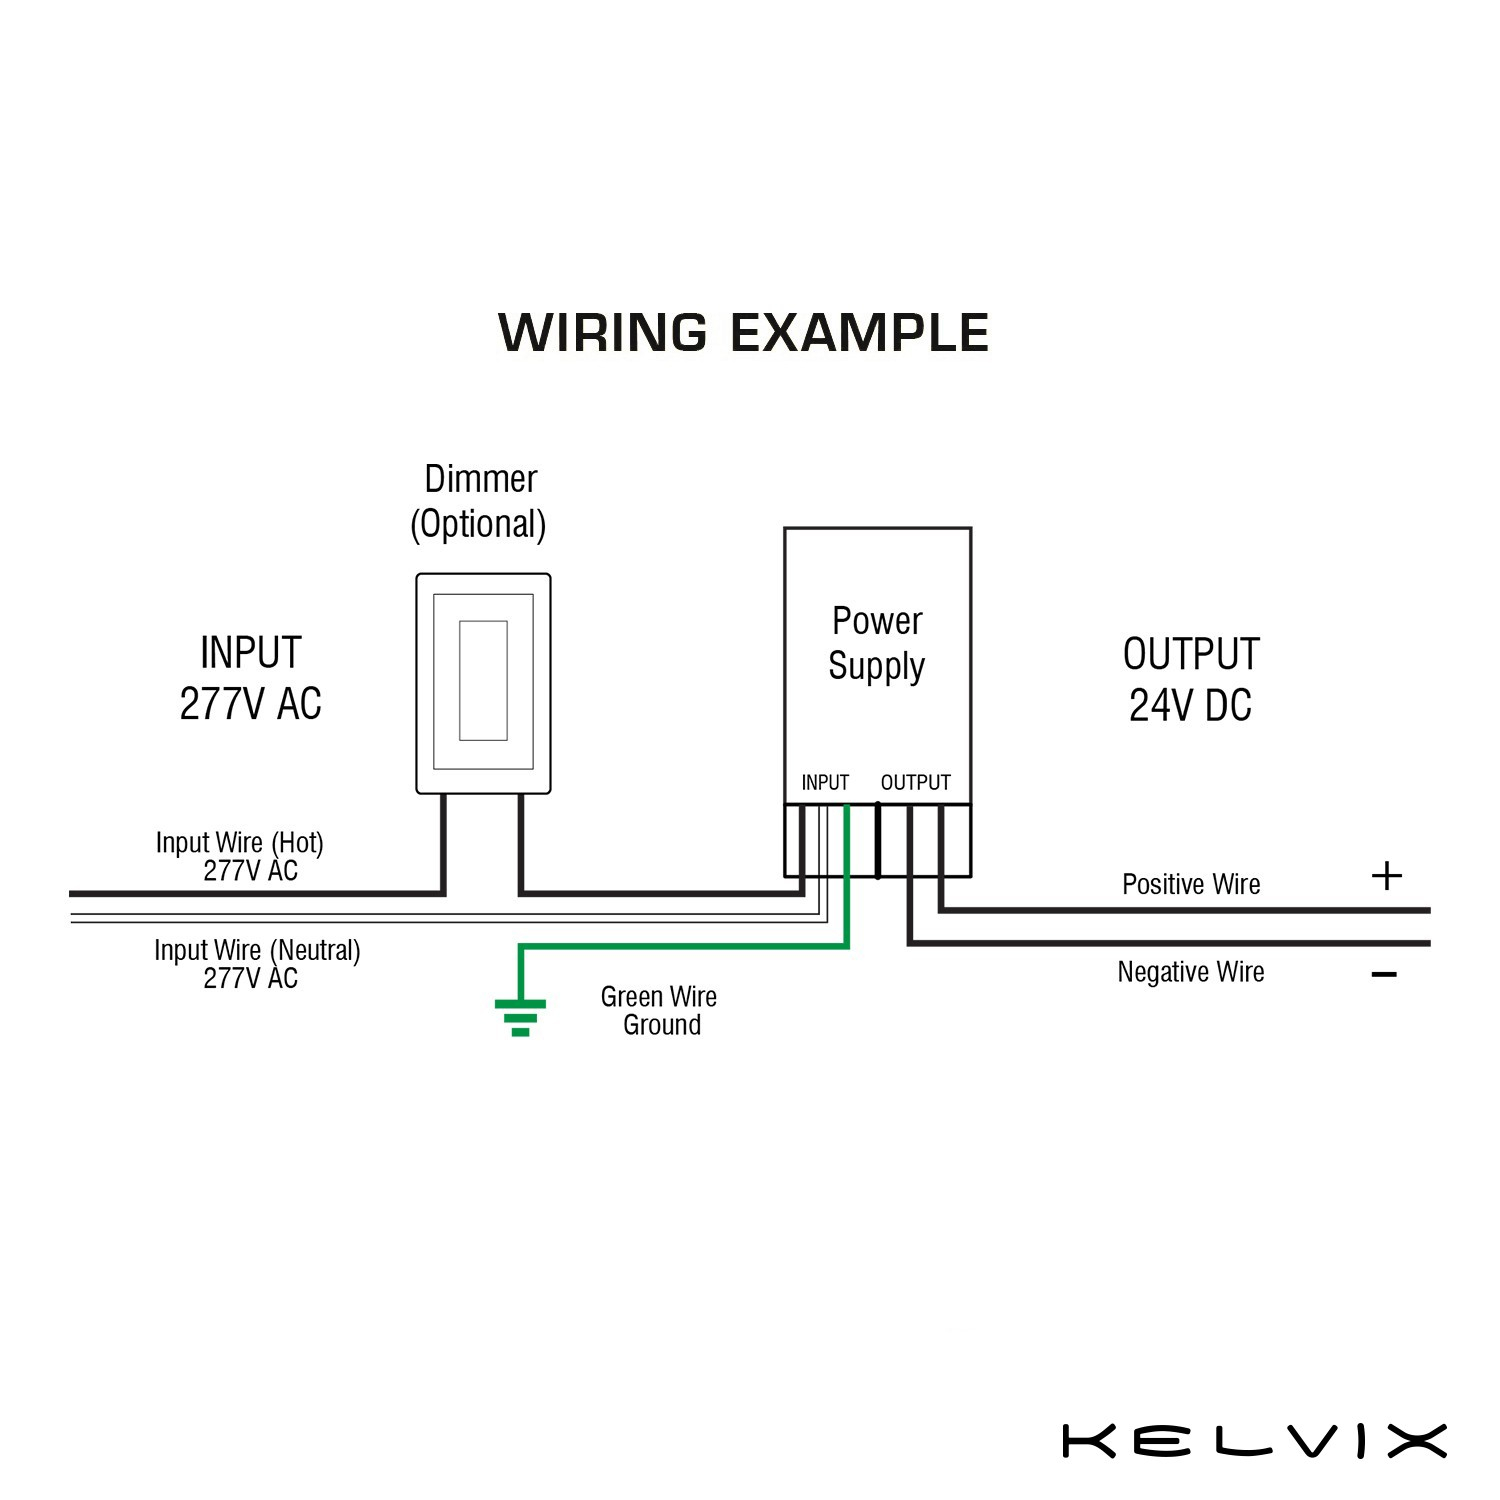 hight resolution of single phase 277v wiring diagram wires data schematic diagram 277v light electrical wiring diagrams